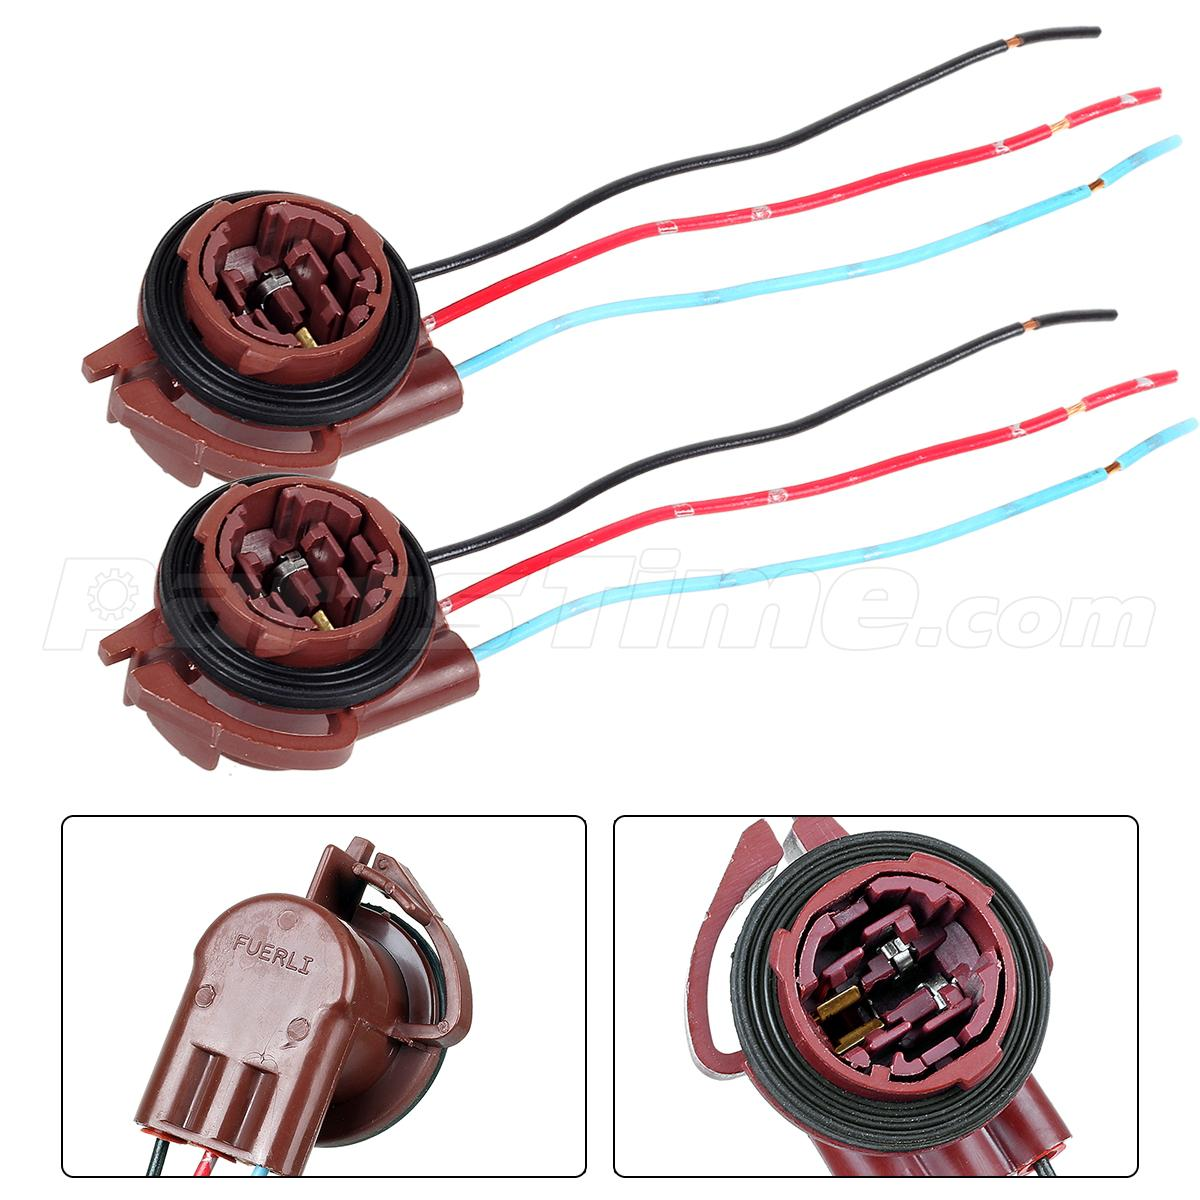 3157 socket lighting lamps 2pc 3157 3057 female socket brake turn light wire harness connector for chevy